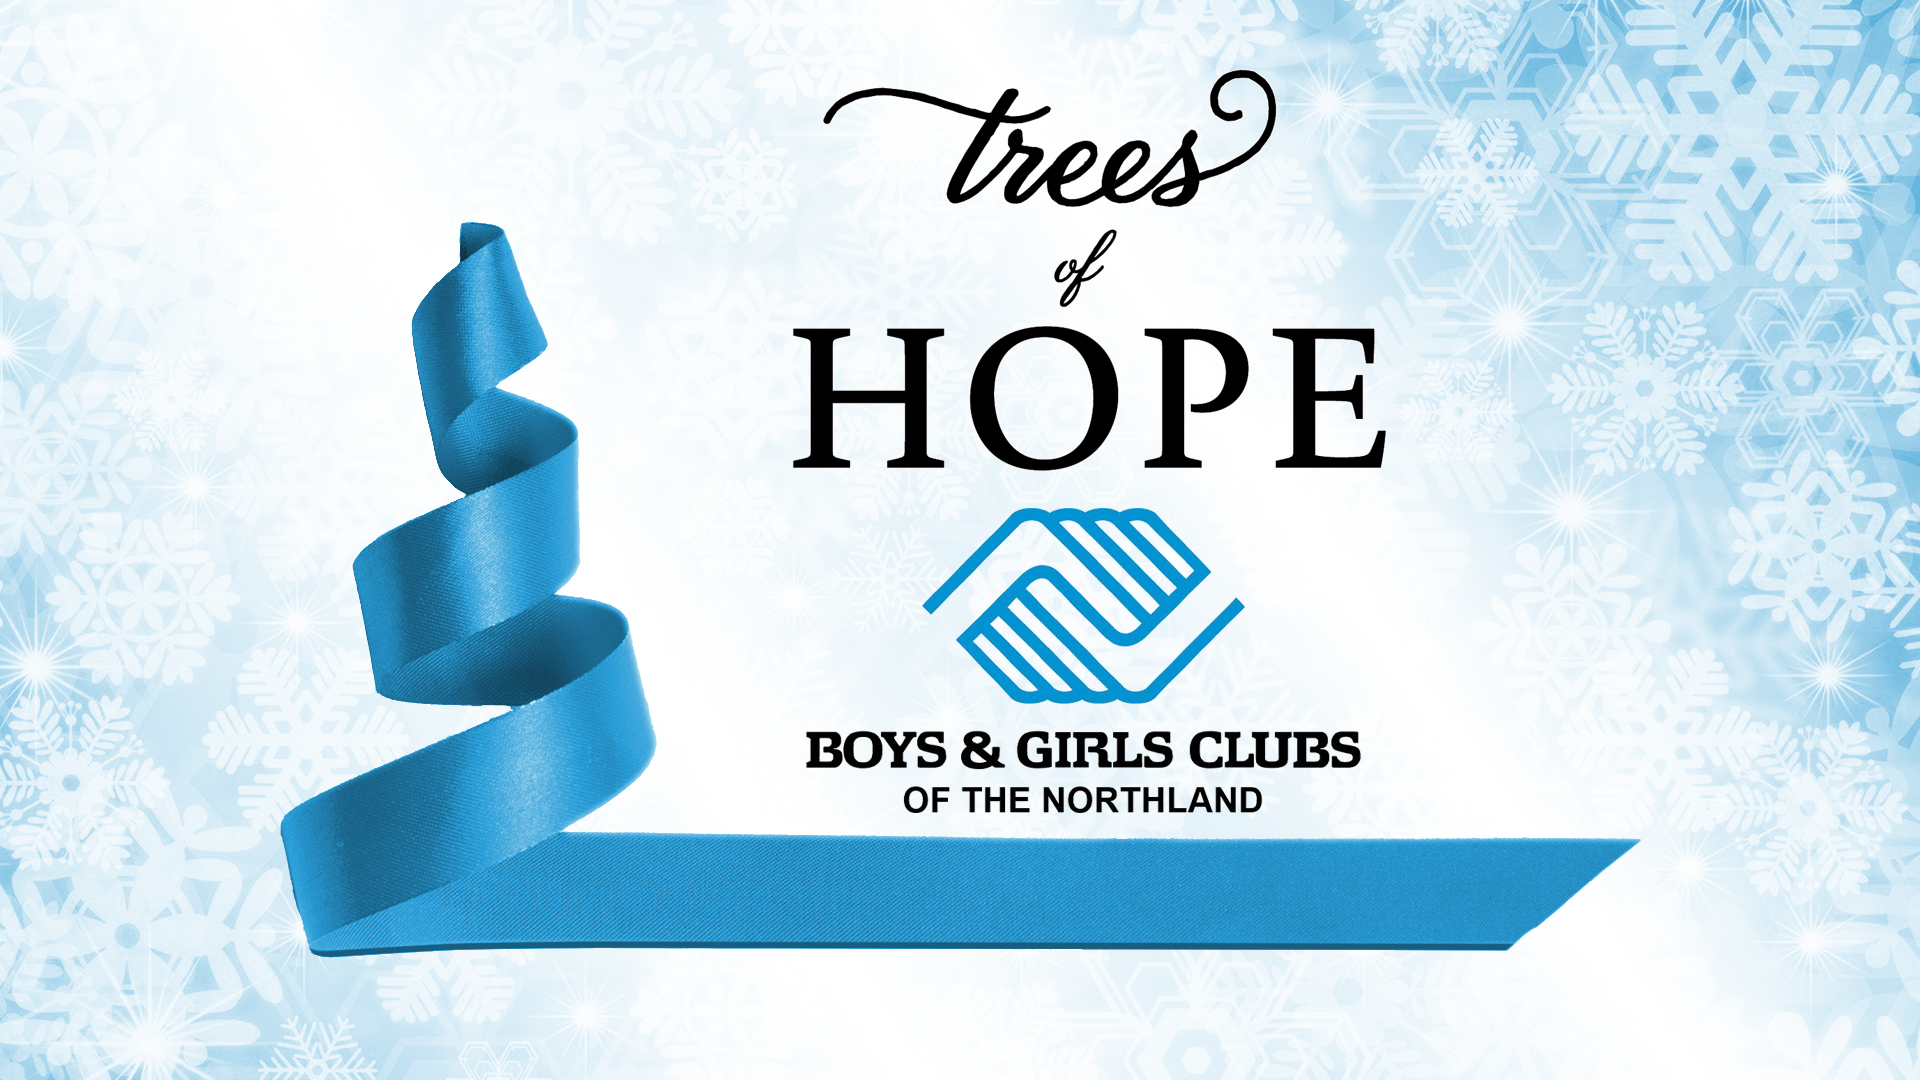 Trees of Hope Charity Drive